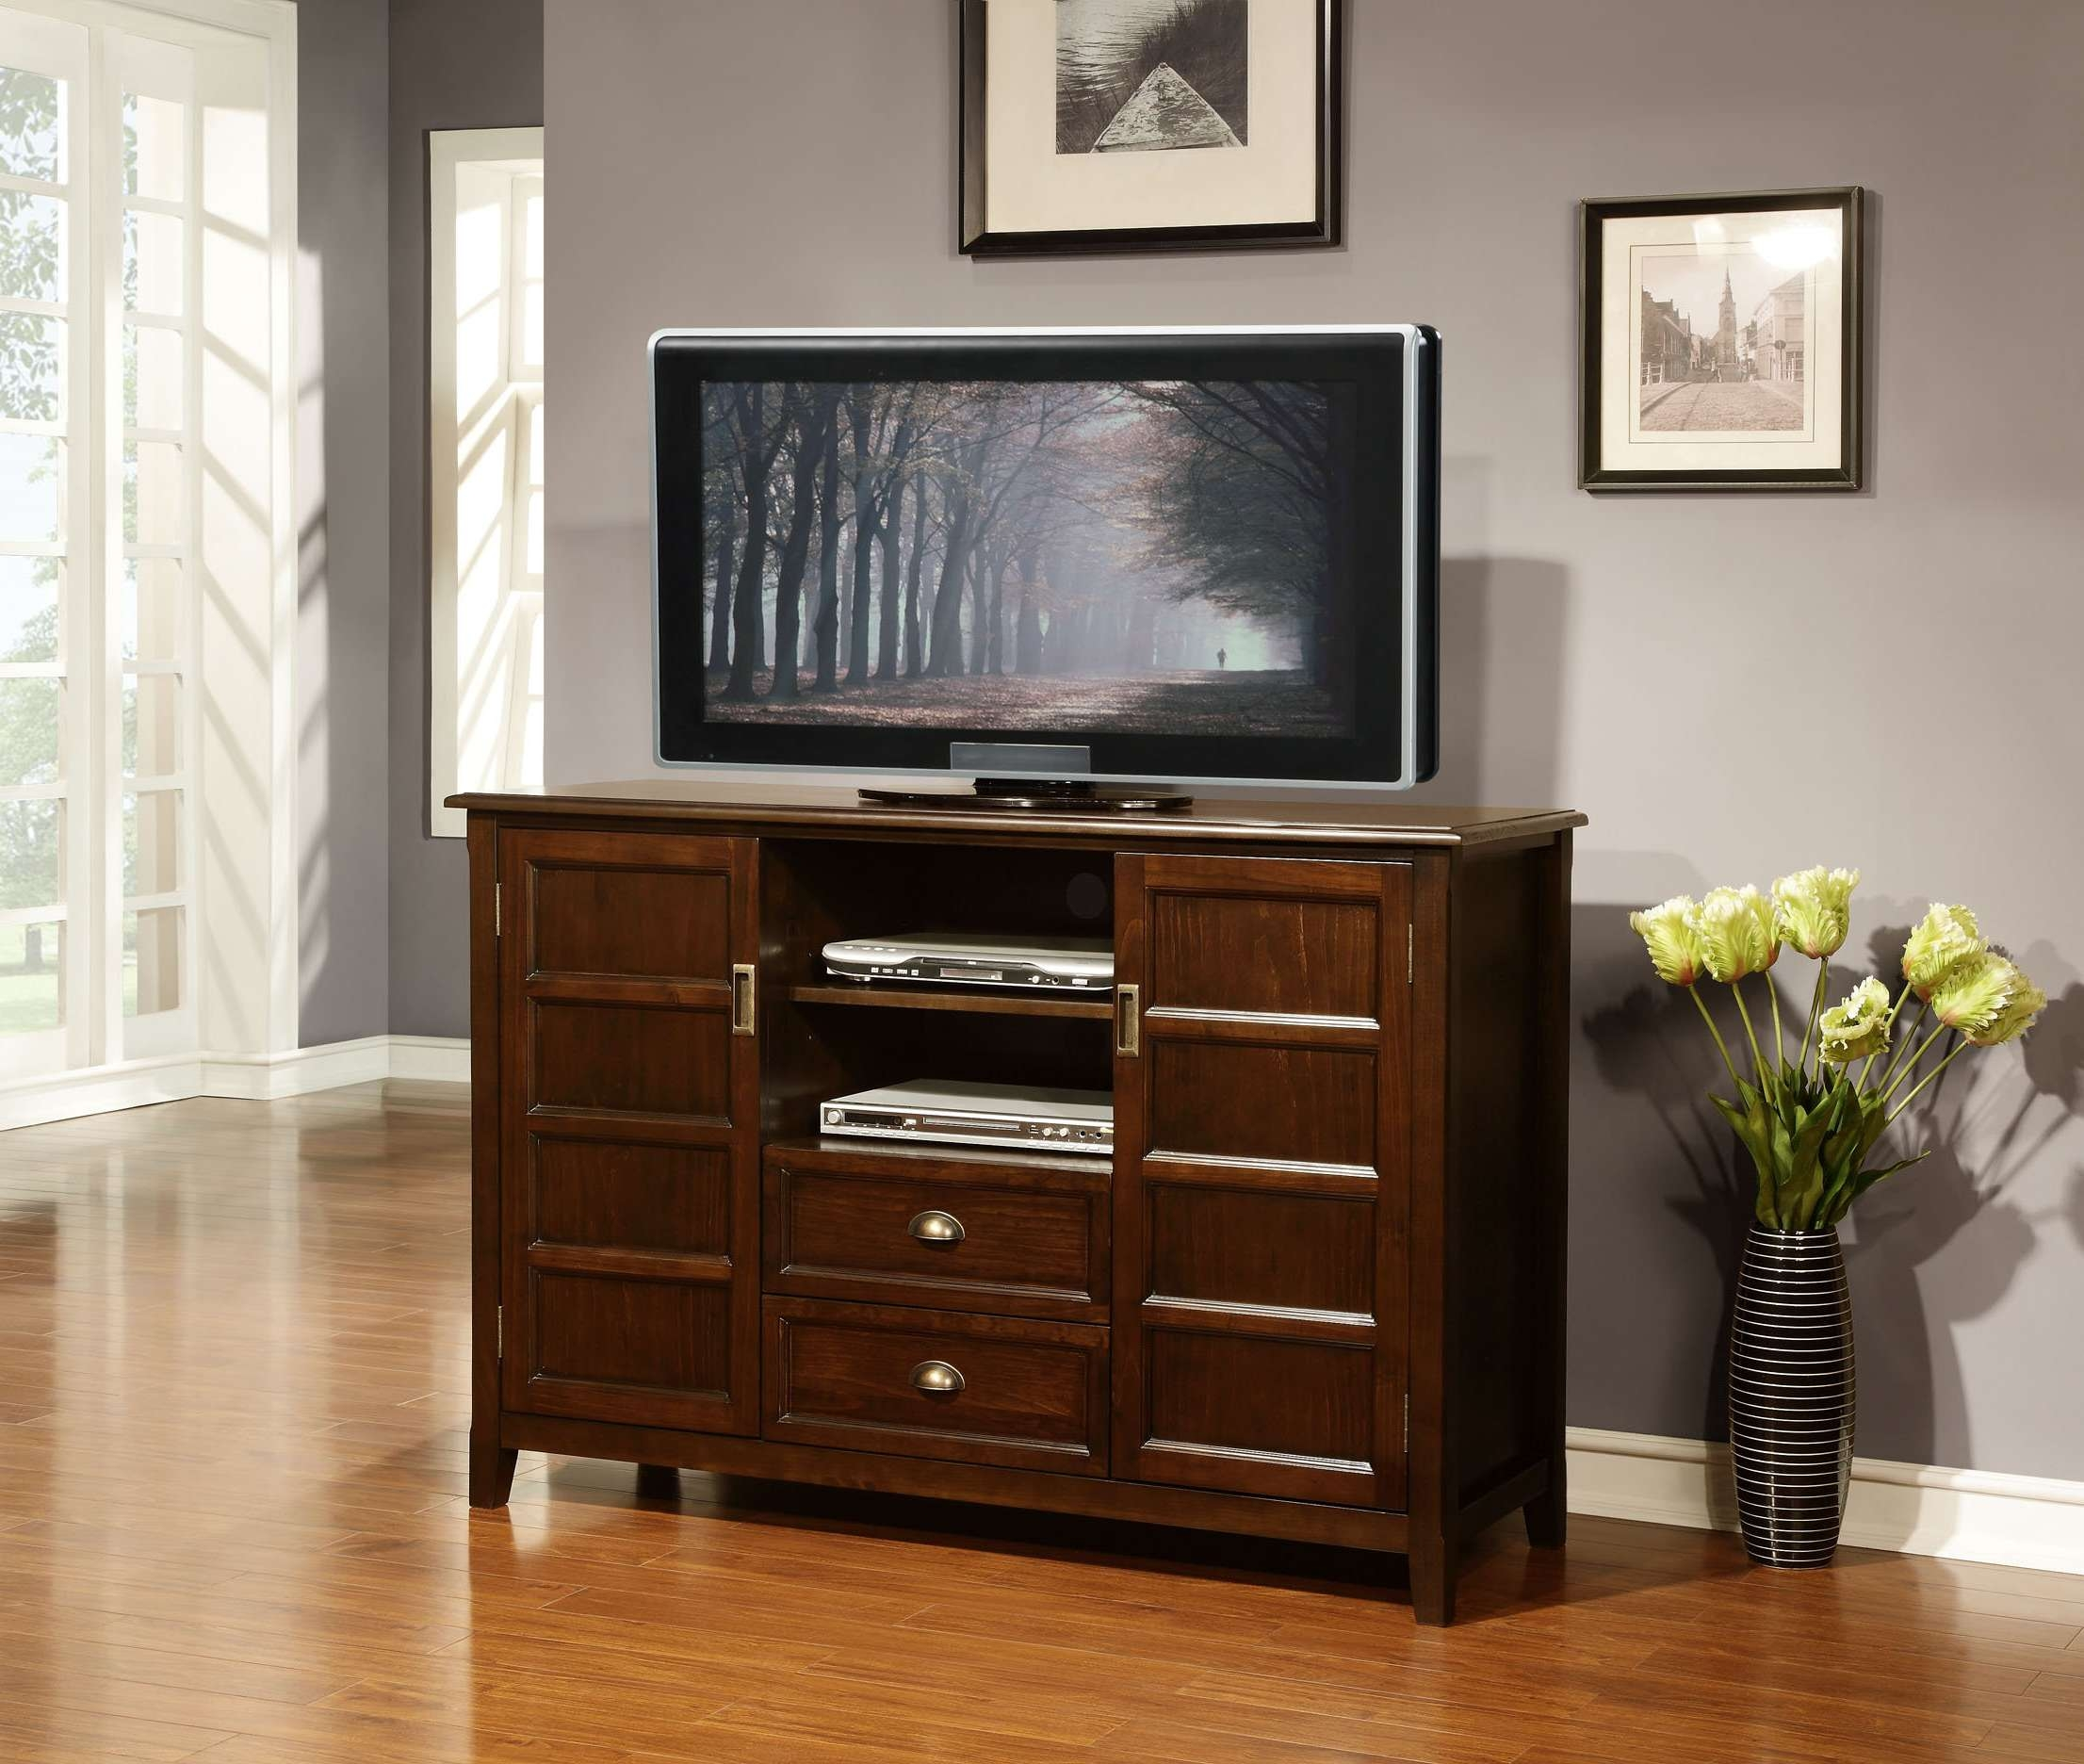 Dark Brown Stained Tv Stand With Two Shelves And Drawers On The Pertaining To Tv Stands With Drawers And Shelves (View 3 of 15)